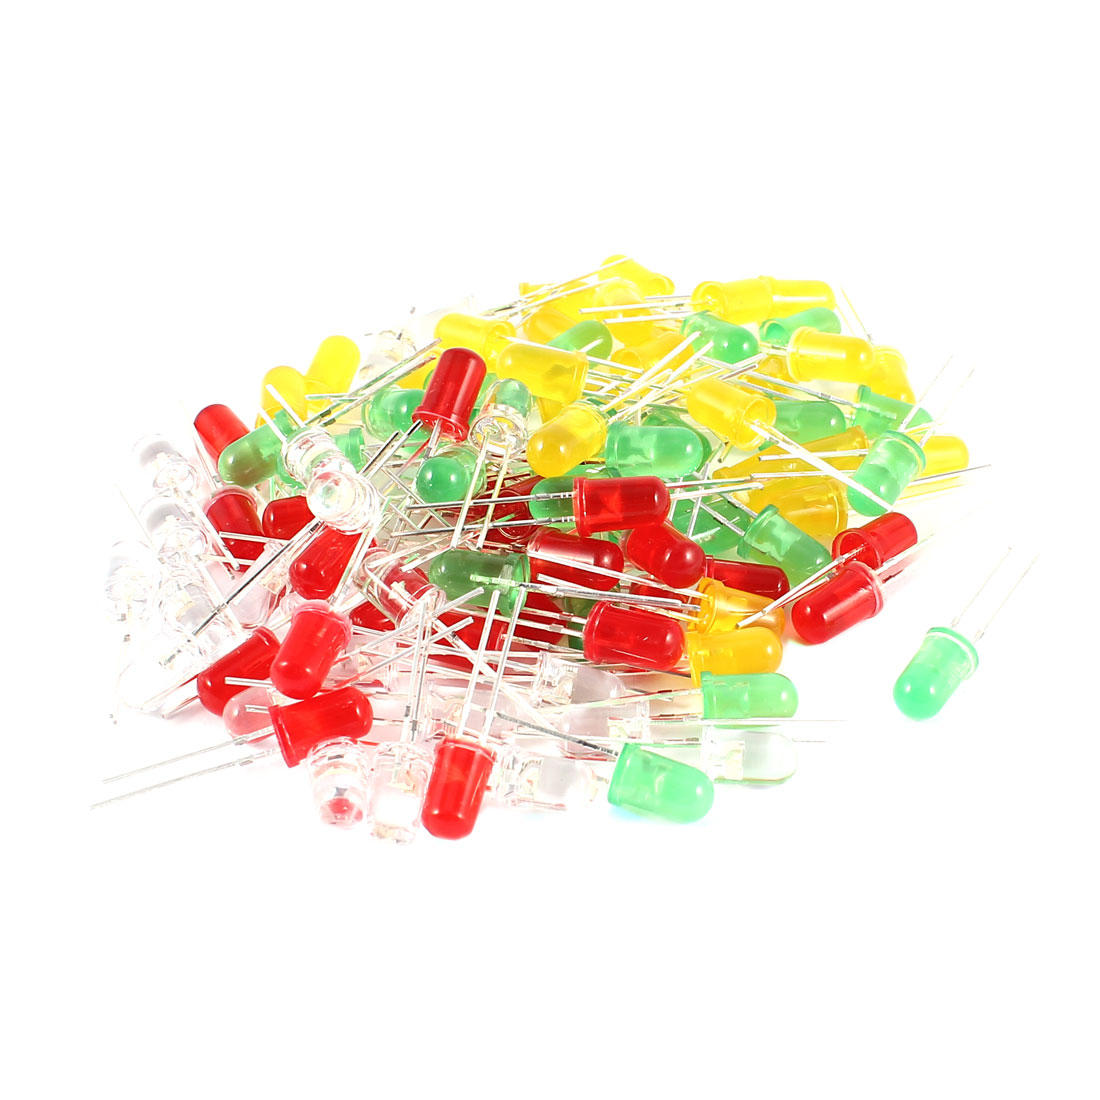 100 Pieces Straw Hat 5mm Red Green Yellow White LED Light Emitting Diode